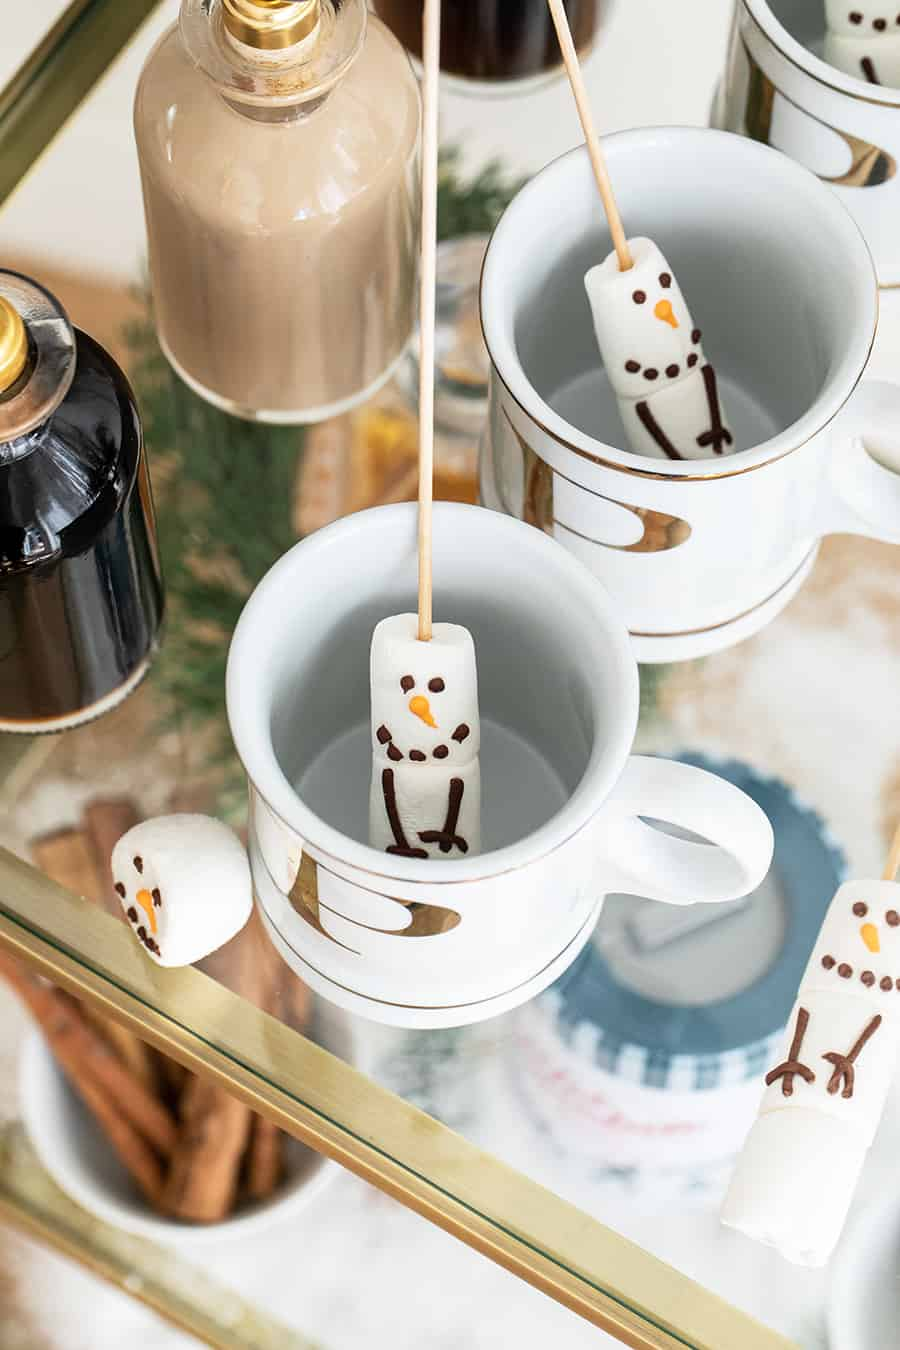 Snowman marshmallows on sticks going into a gold mug.